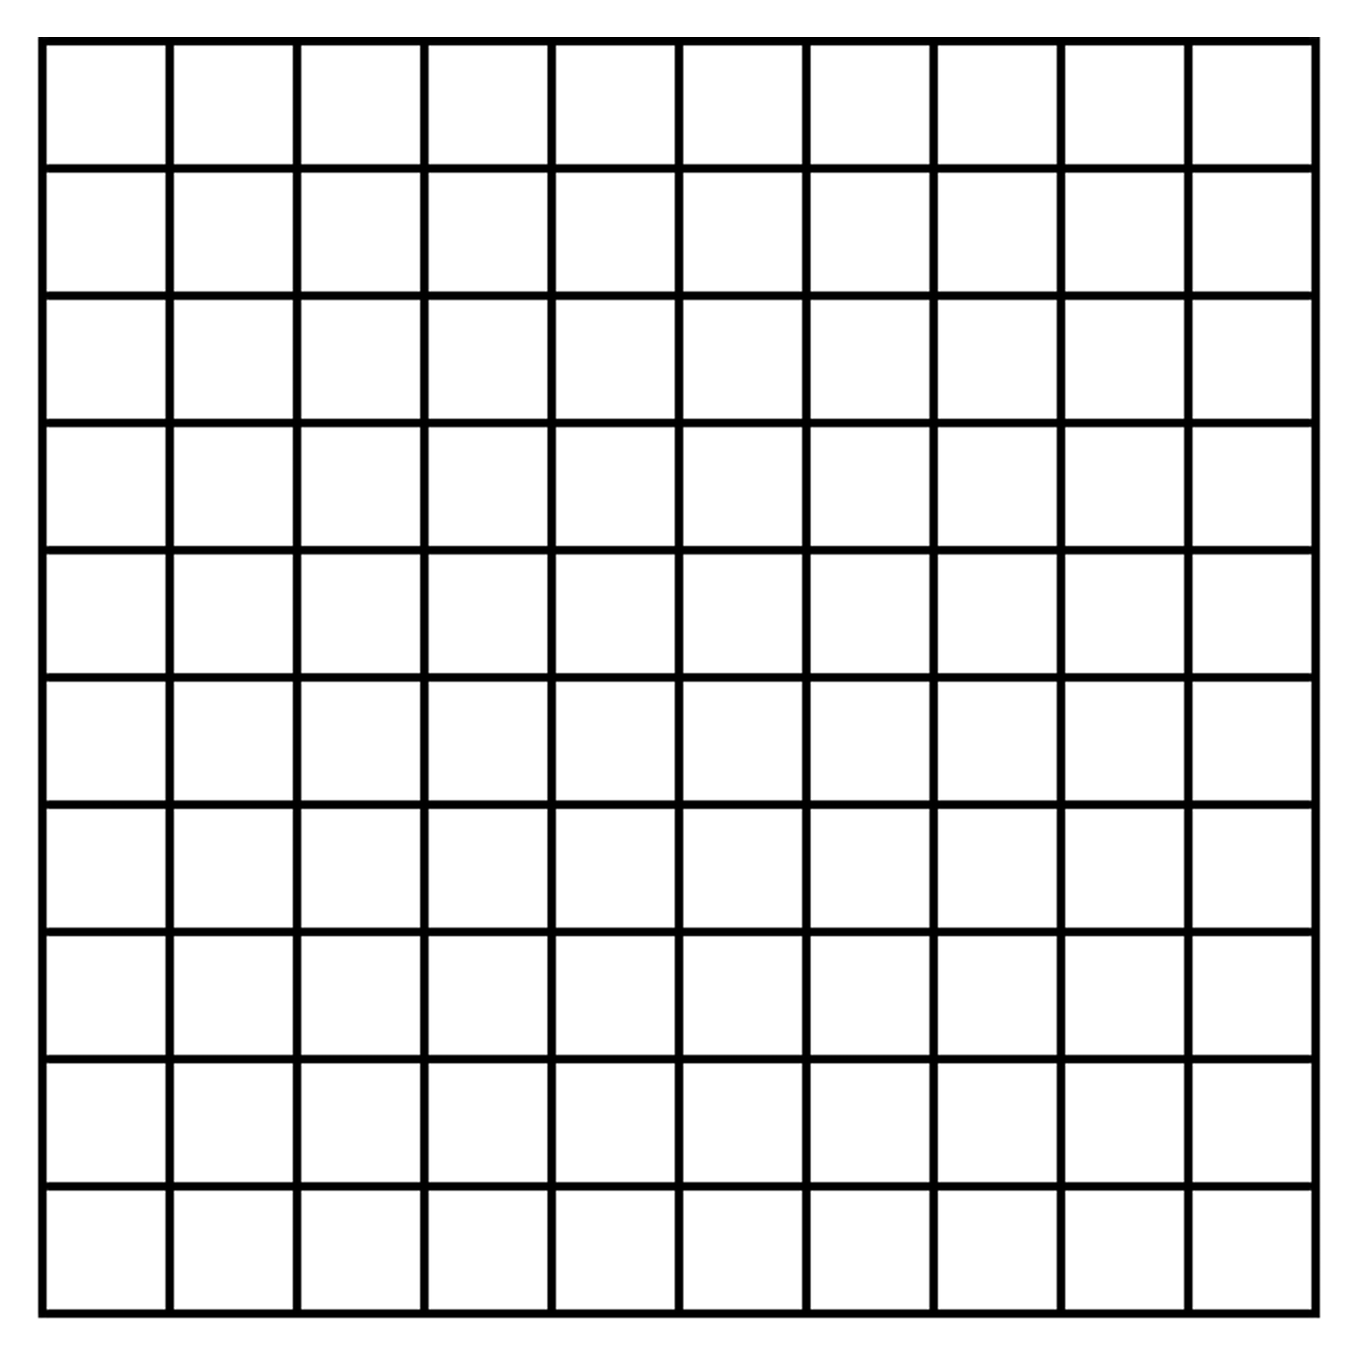 photo about Printable Hundreds Grids named 100 Grid Png Free of charge 100 Grid.png Clear Visuals #12889